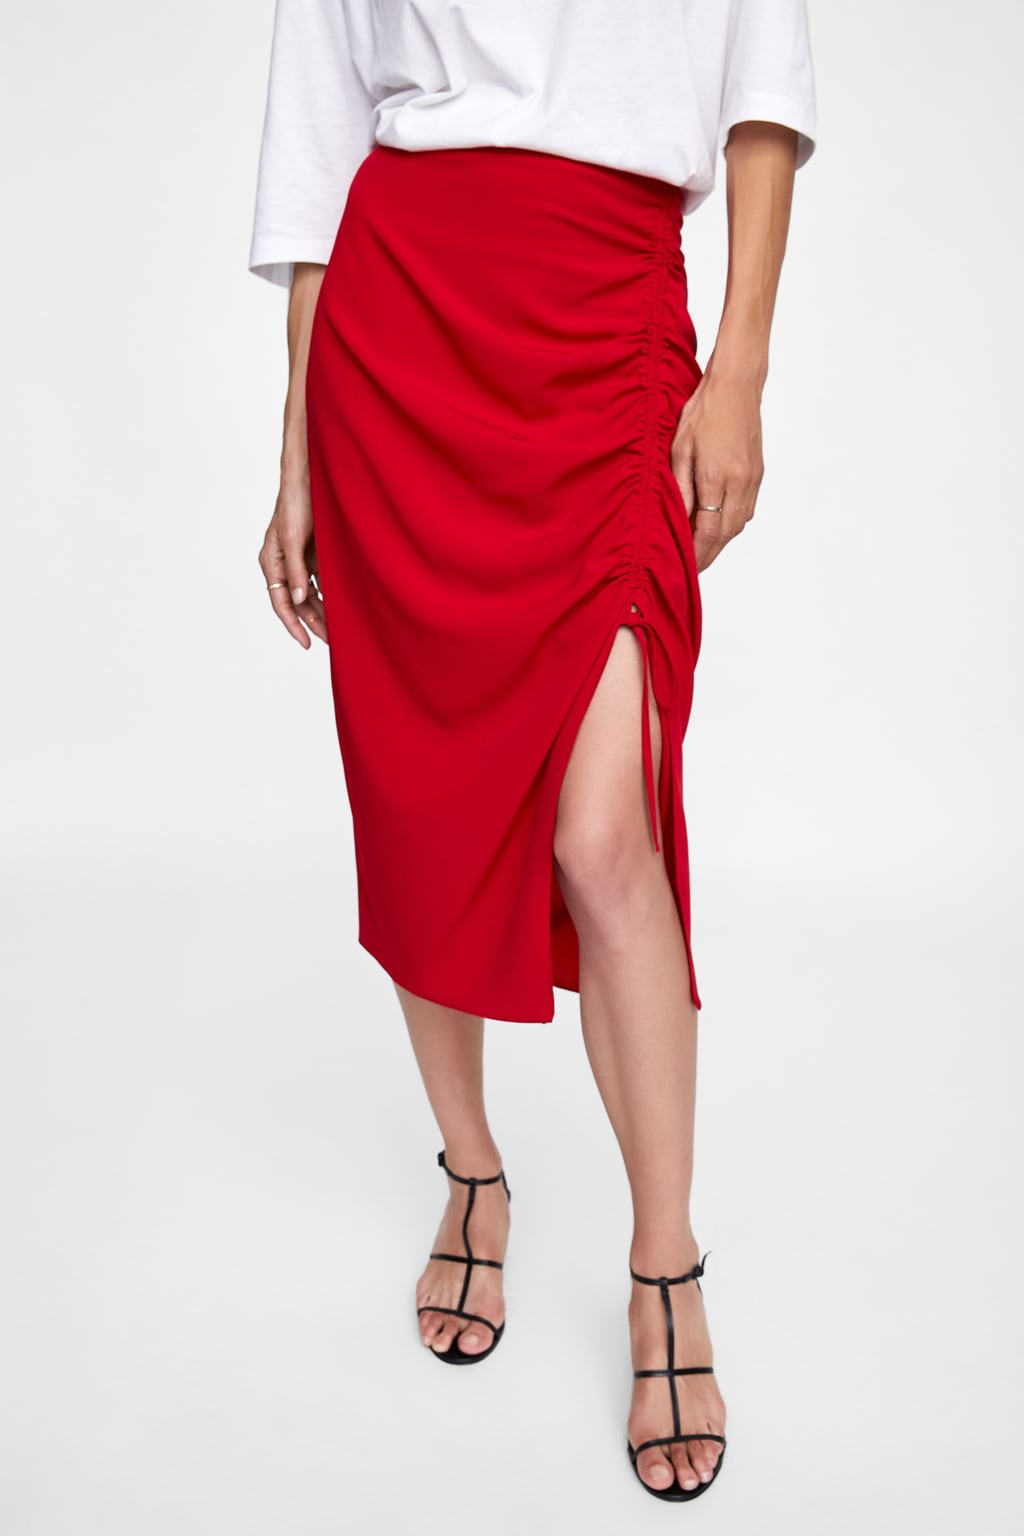 https://www.zara.com/ca/en/skirt-with-front-ruching-p07956862.html?v1=7046034&v2=967548